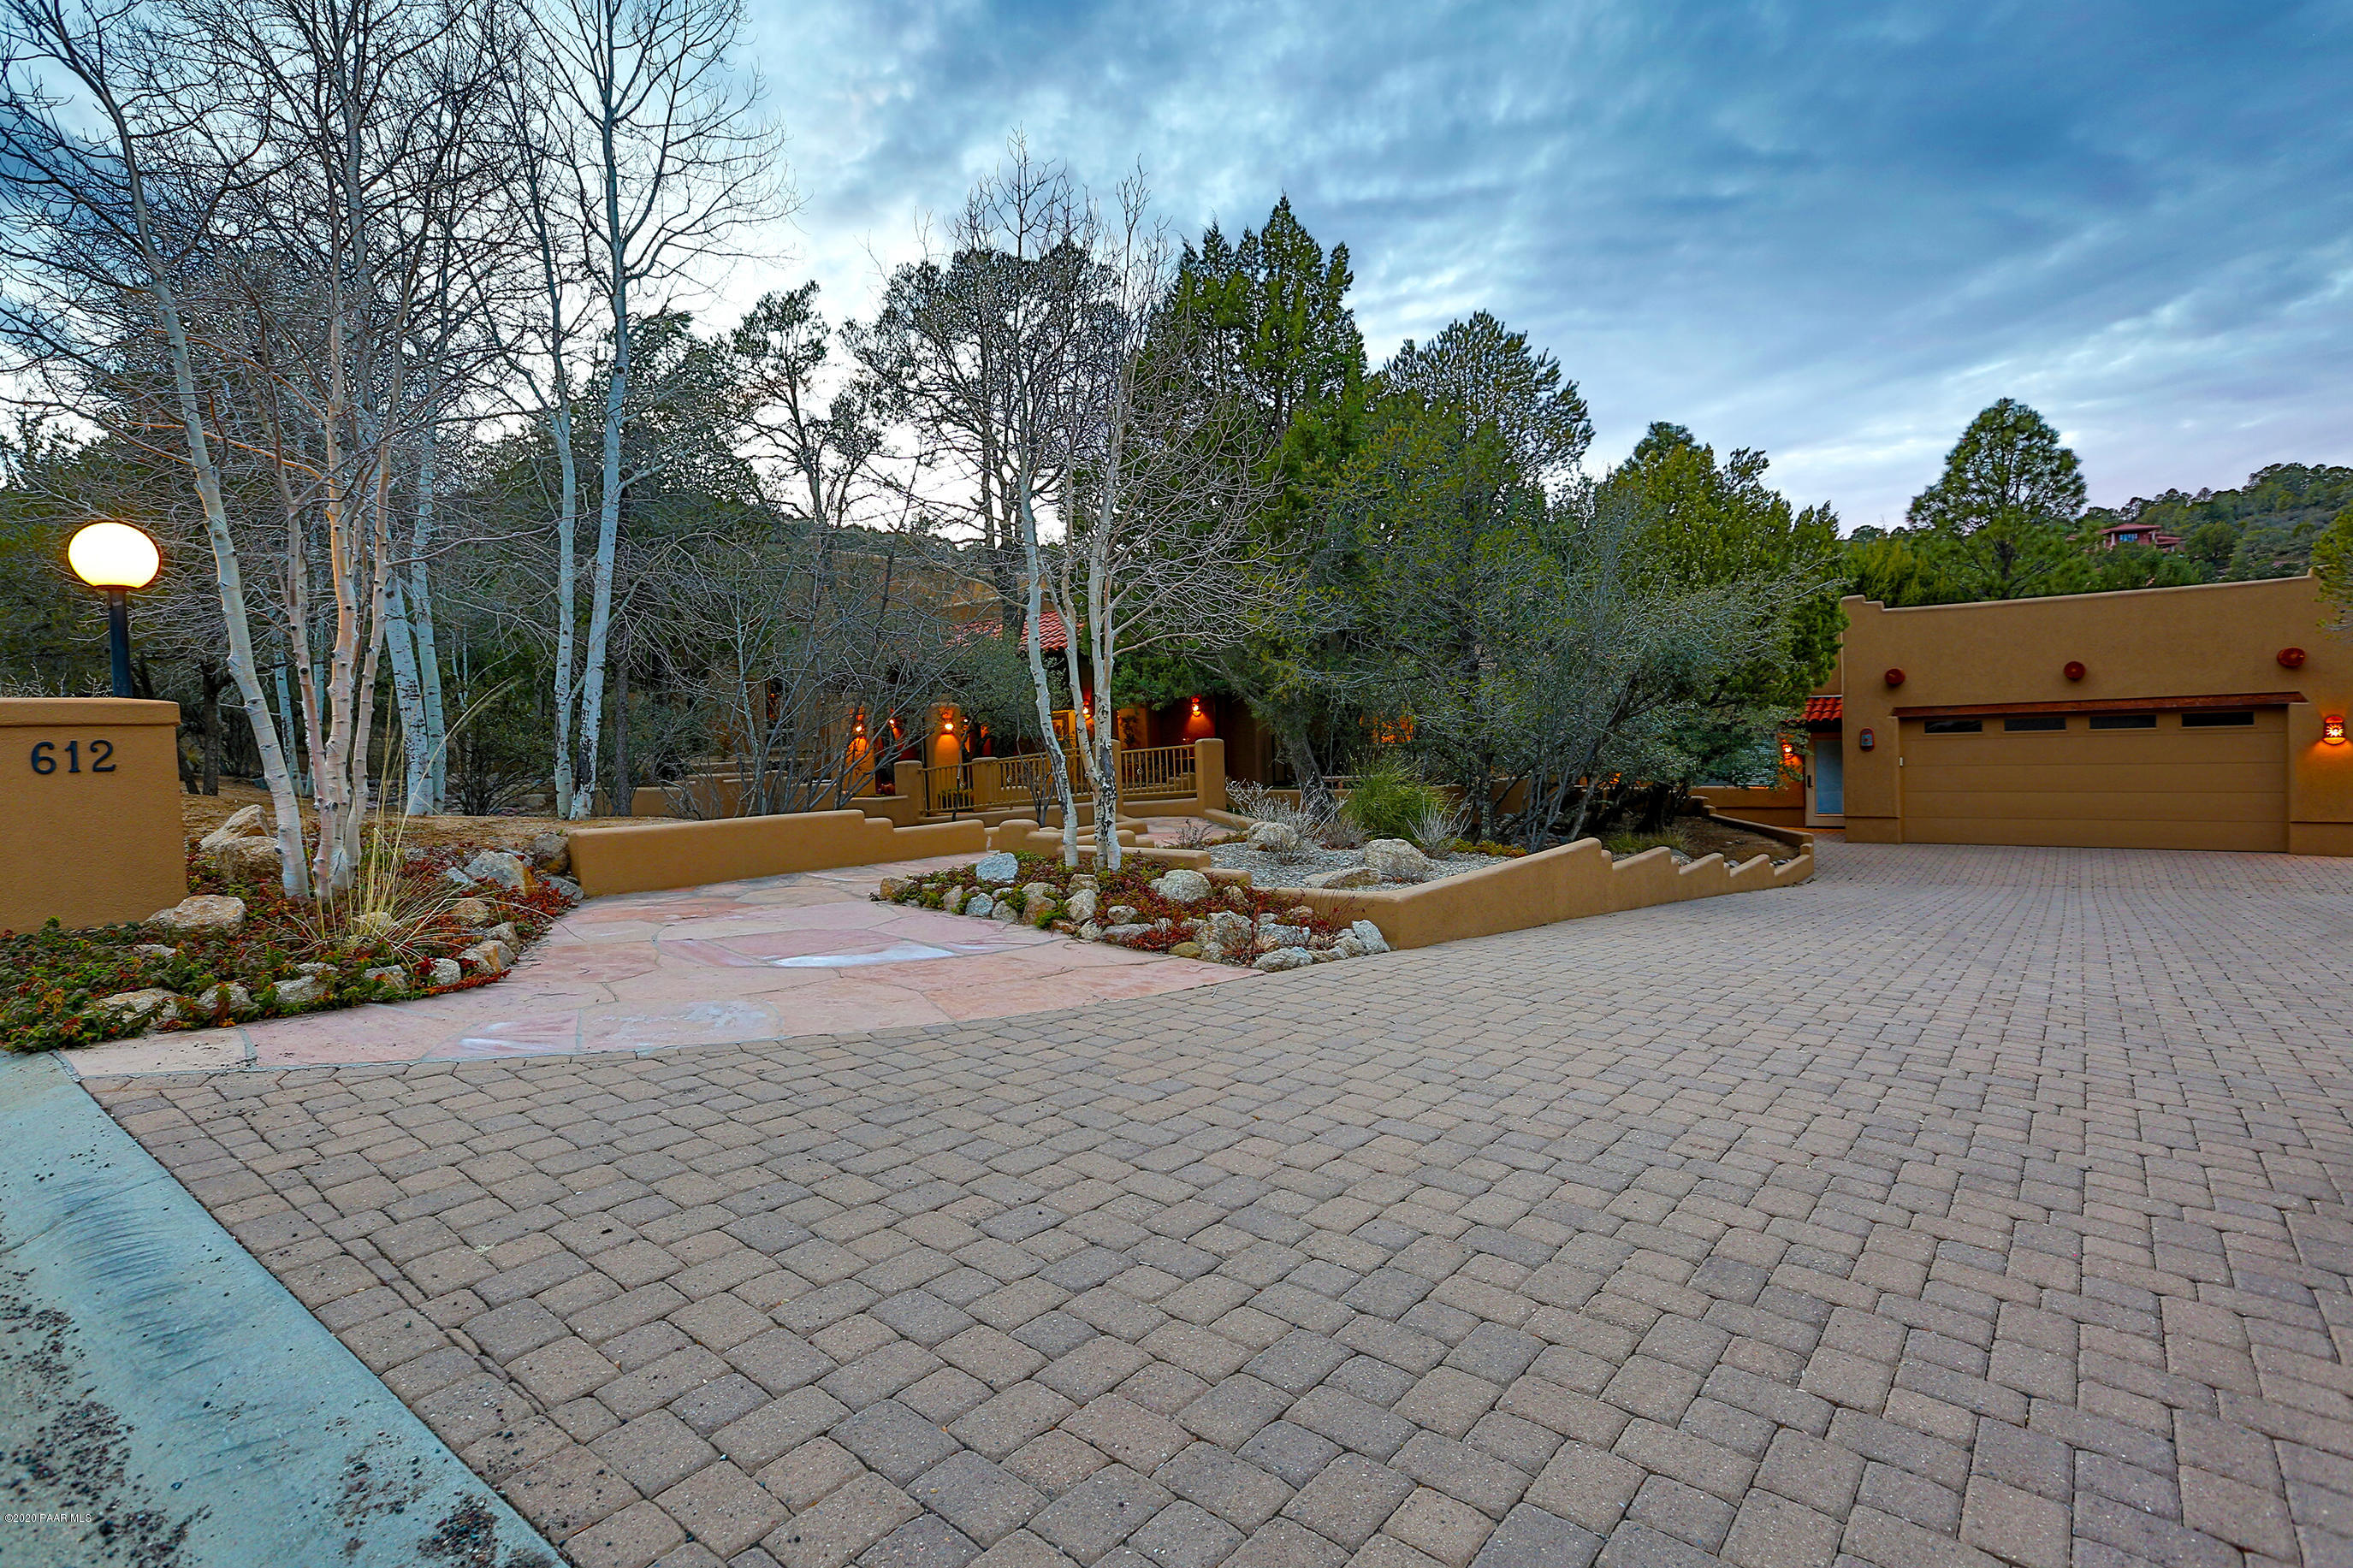 Photo of 612 Heather Brook, Prescott, AZ 86303